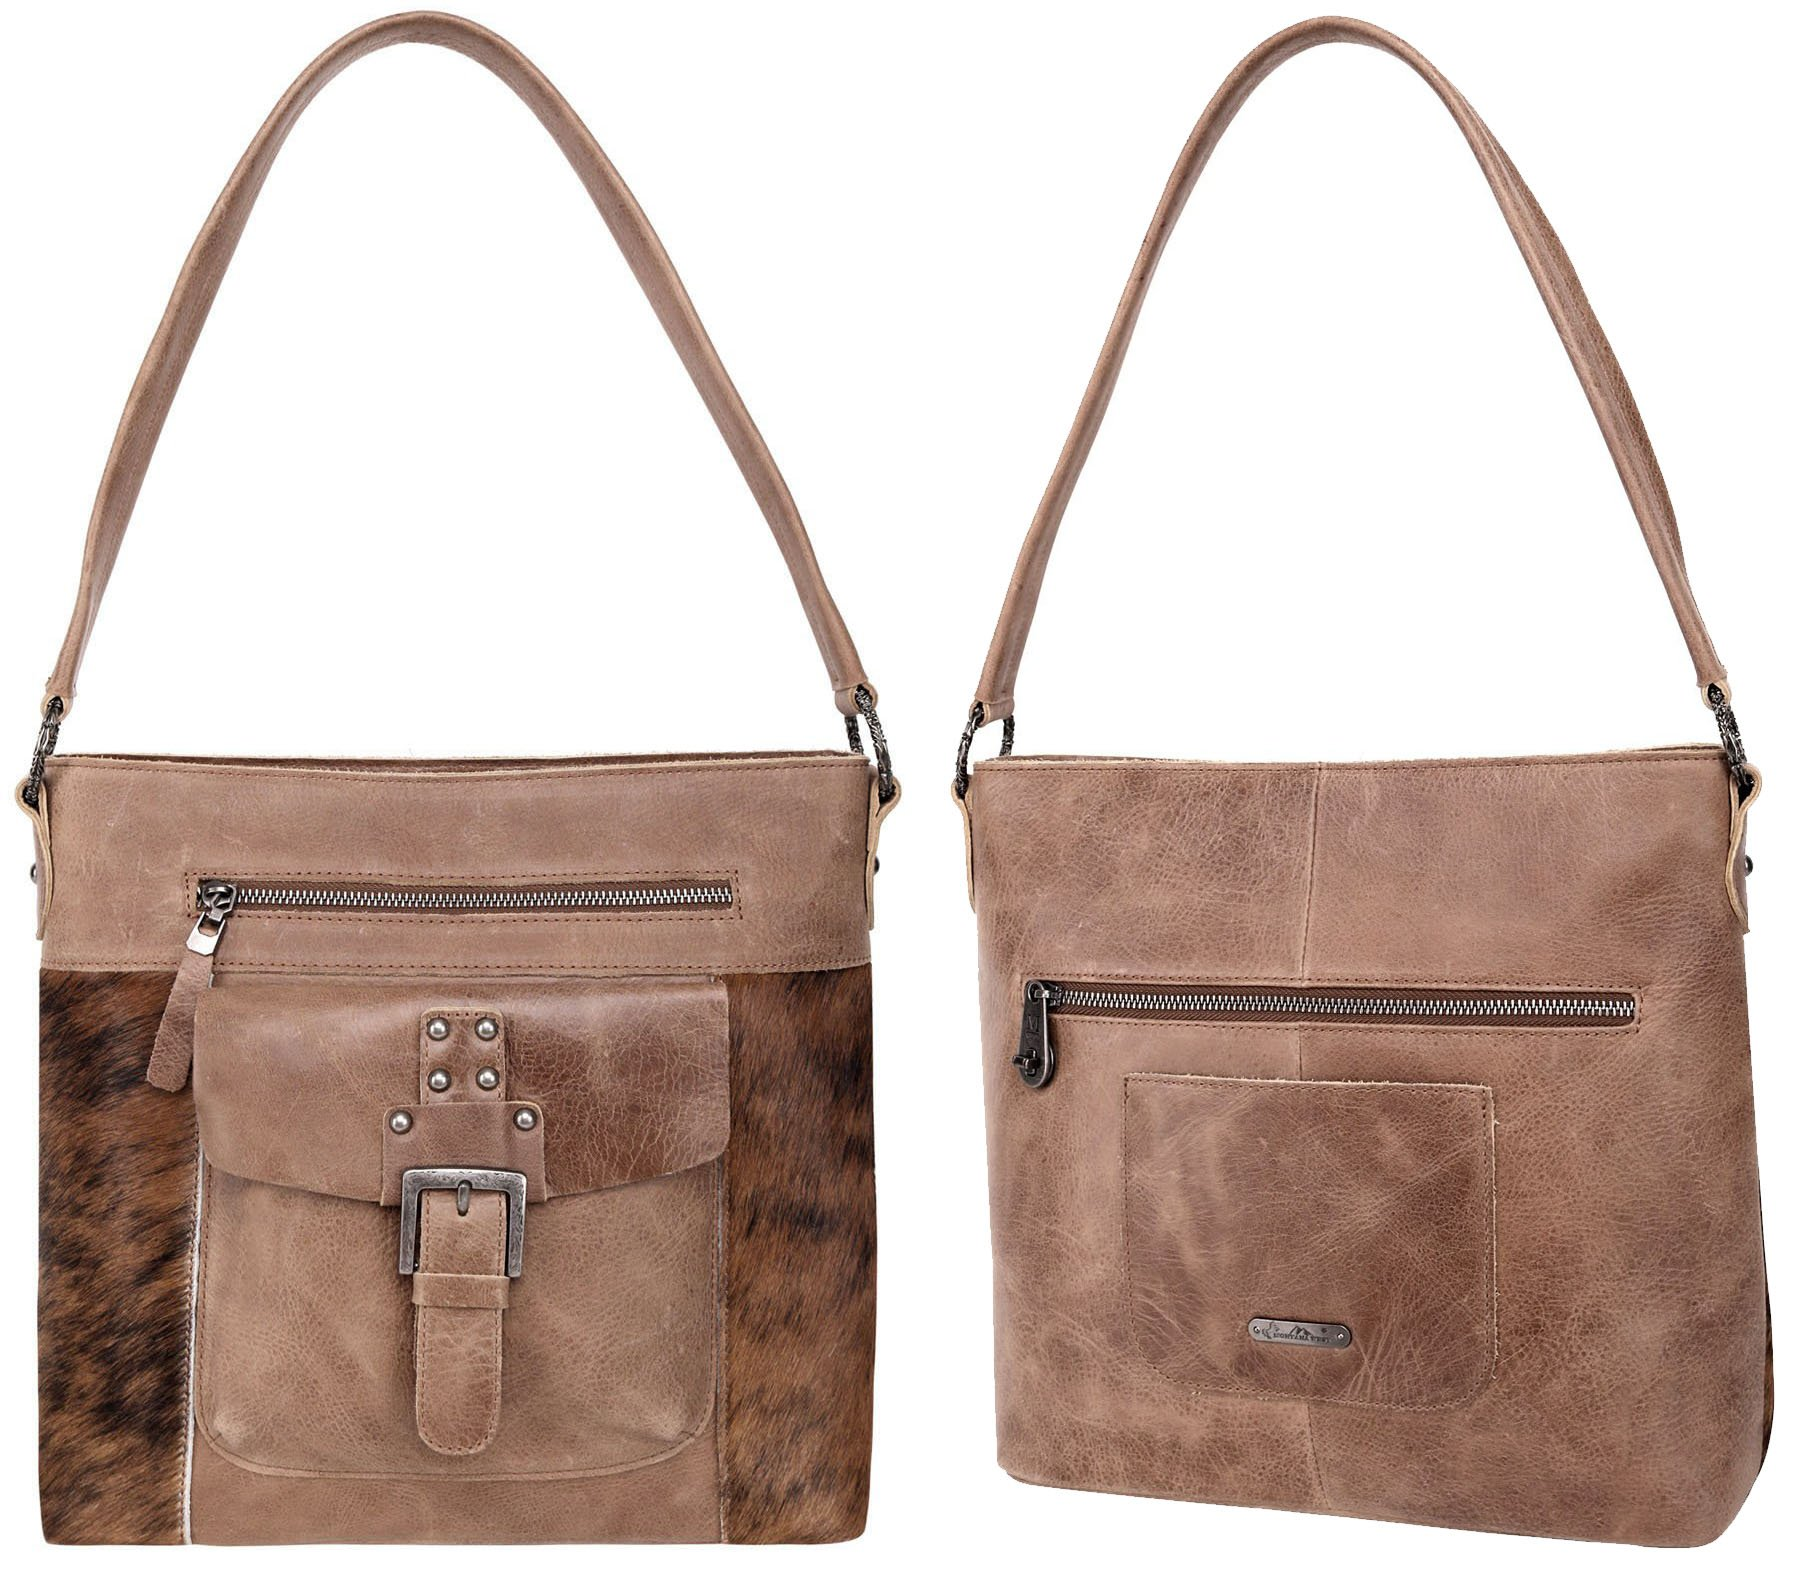 Made from luxurious genuine hair-on cowhide leather, the Montana West hobo features multiple pockets and an easily accessible main compartment